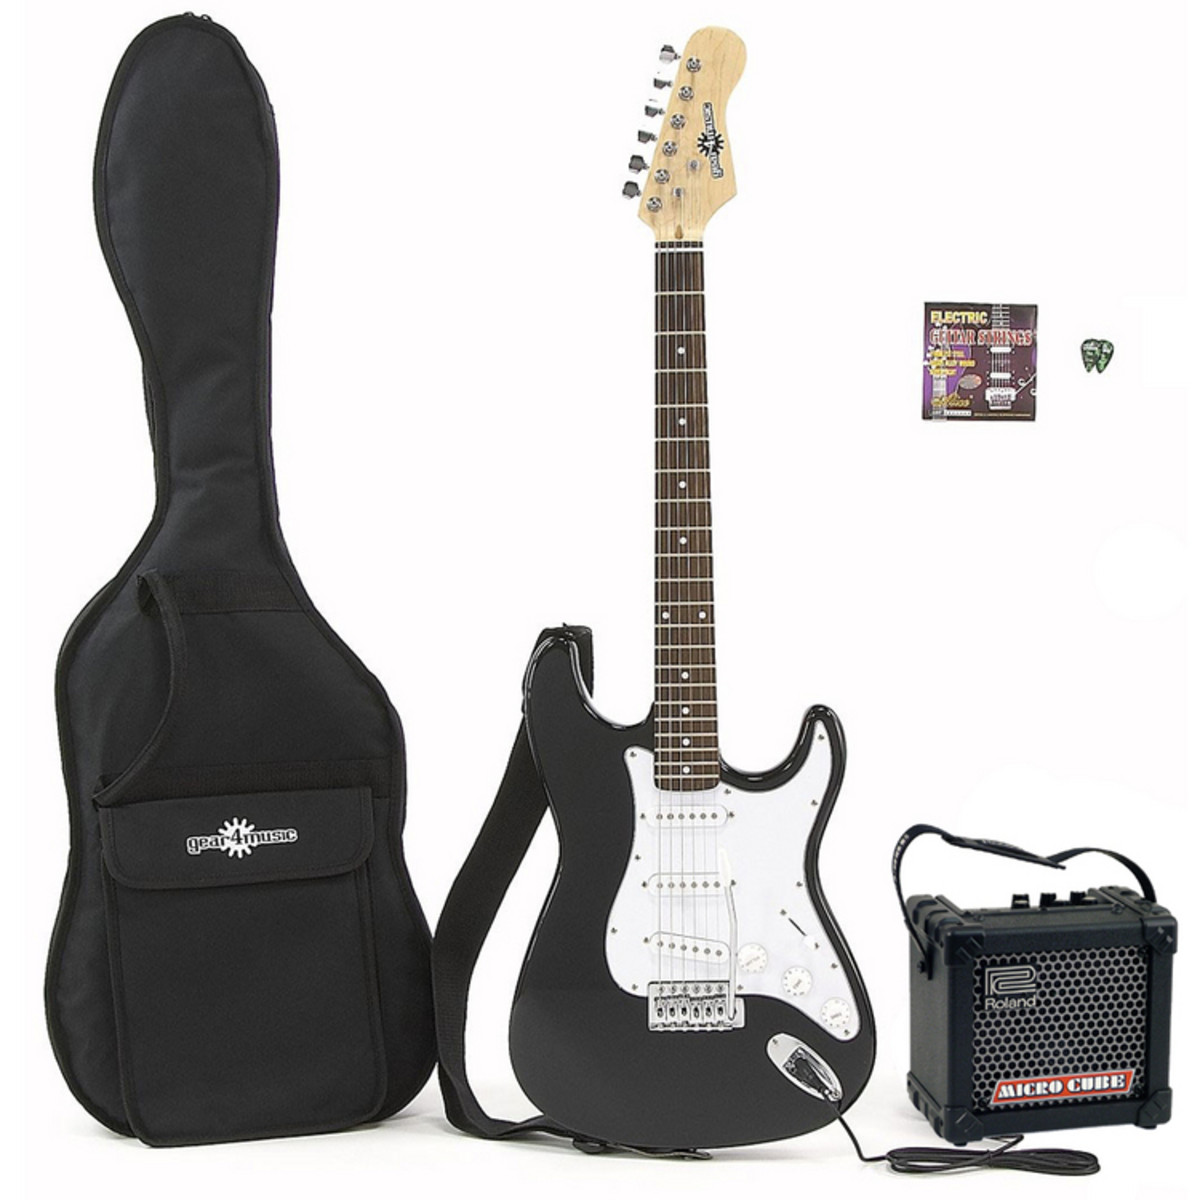 guitare lectrique st roland micro cube pack ampli noir. Black Bedroom Furniture Sets. Home Design Ideas